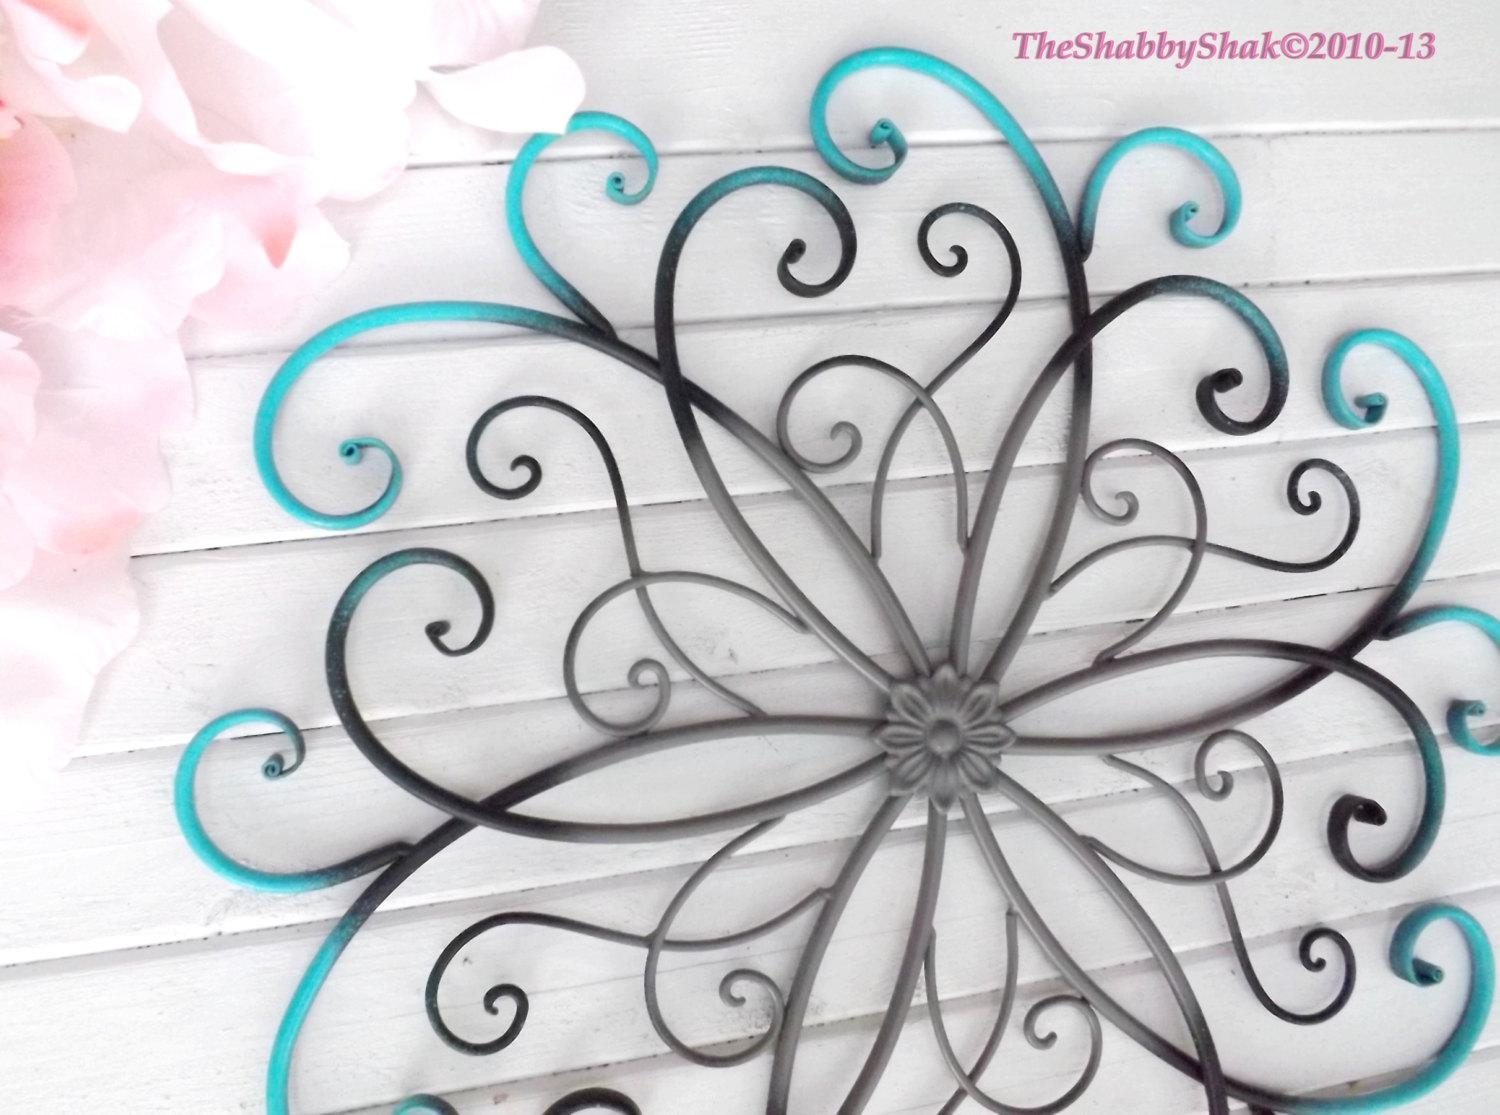 Large Metal Wall Art / Bedroom Wall Decor / Turquoise / Black Pertaining To Turquoise And Black Wall Art (View 20 of 20)